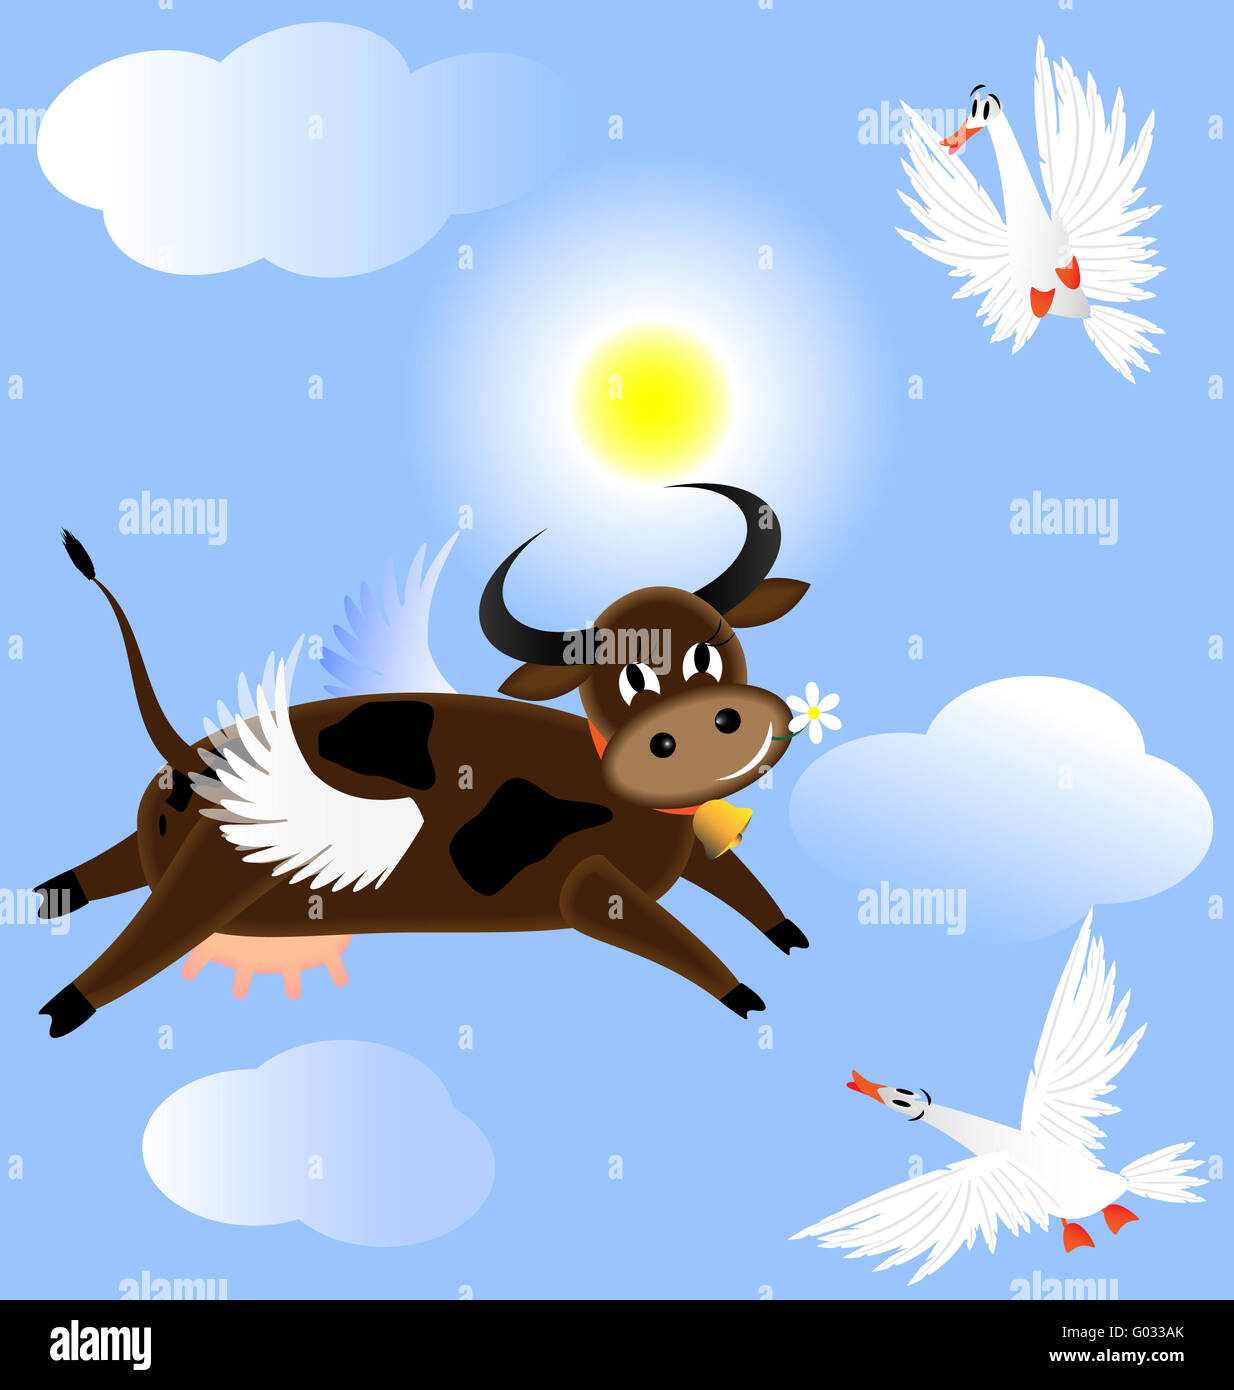 flying cow - Stock Image